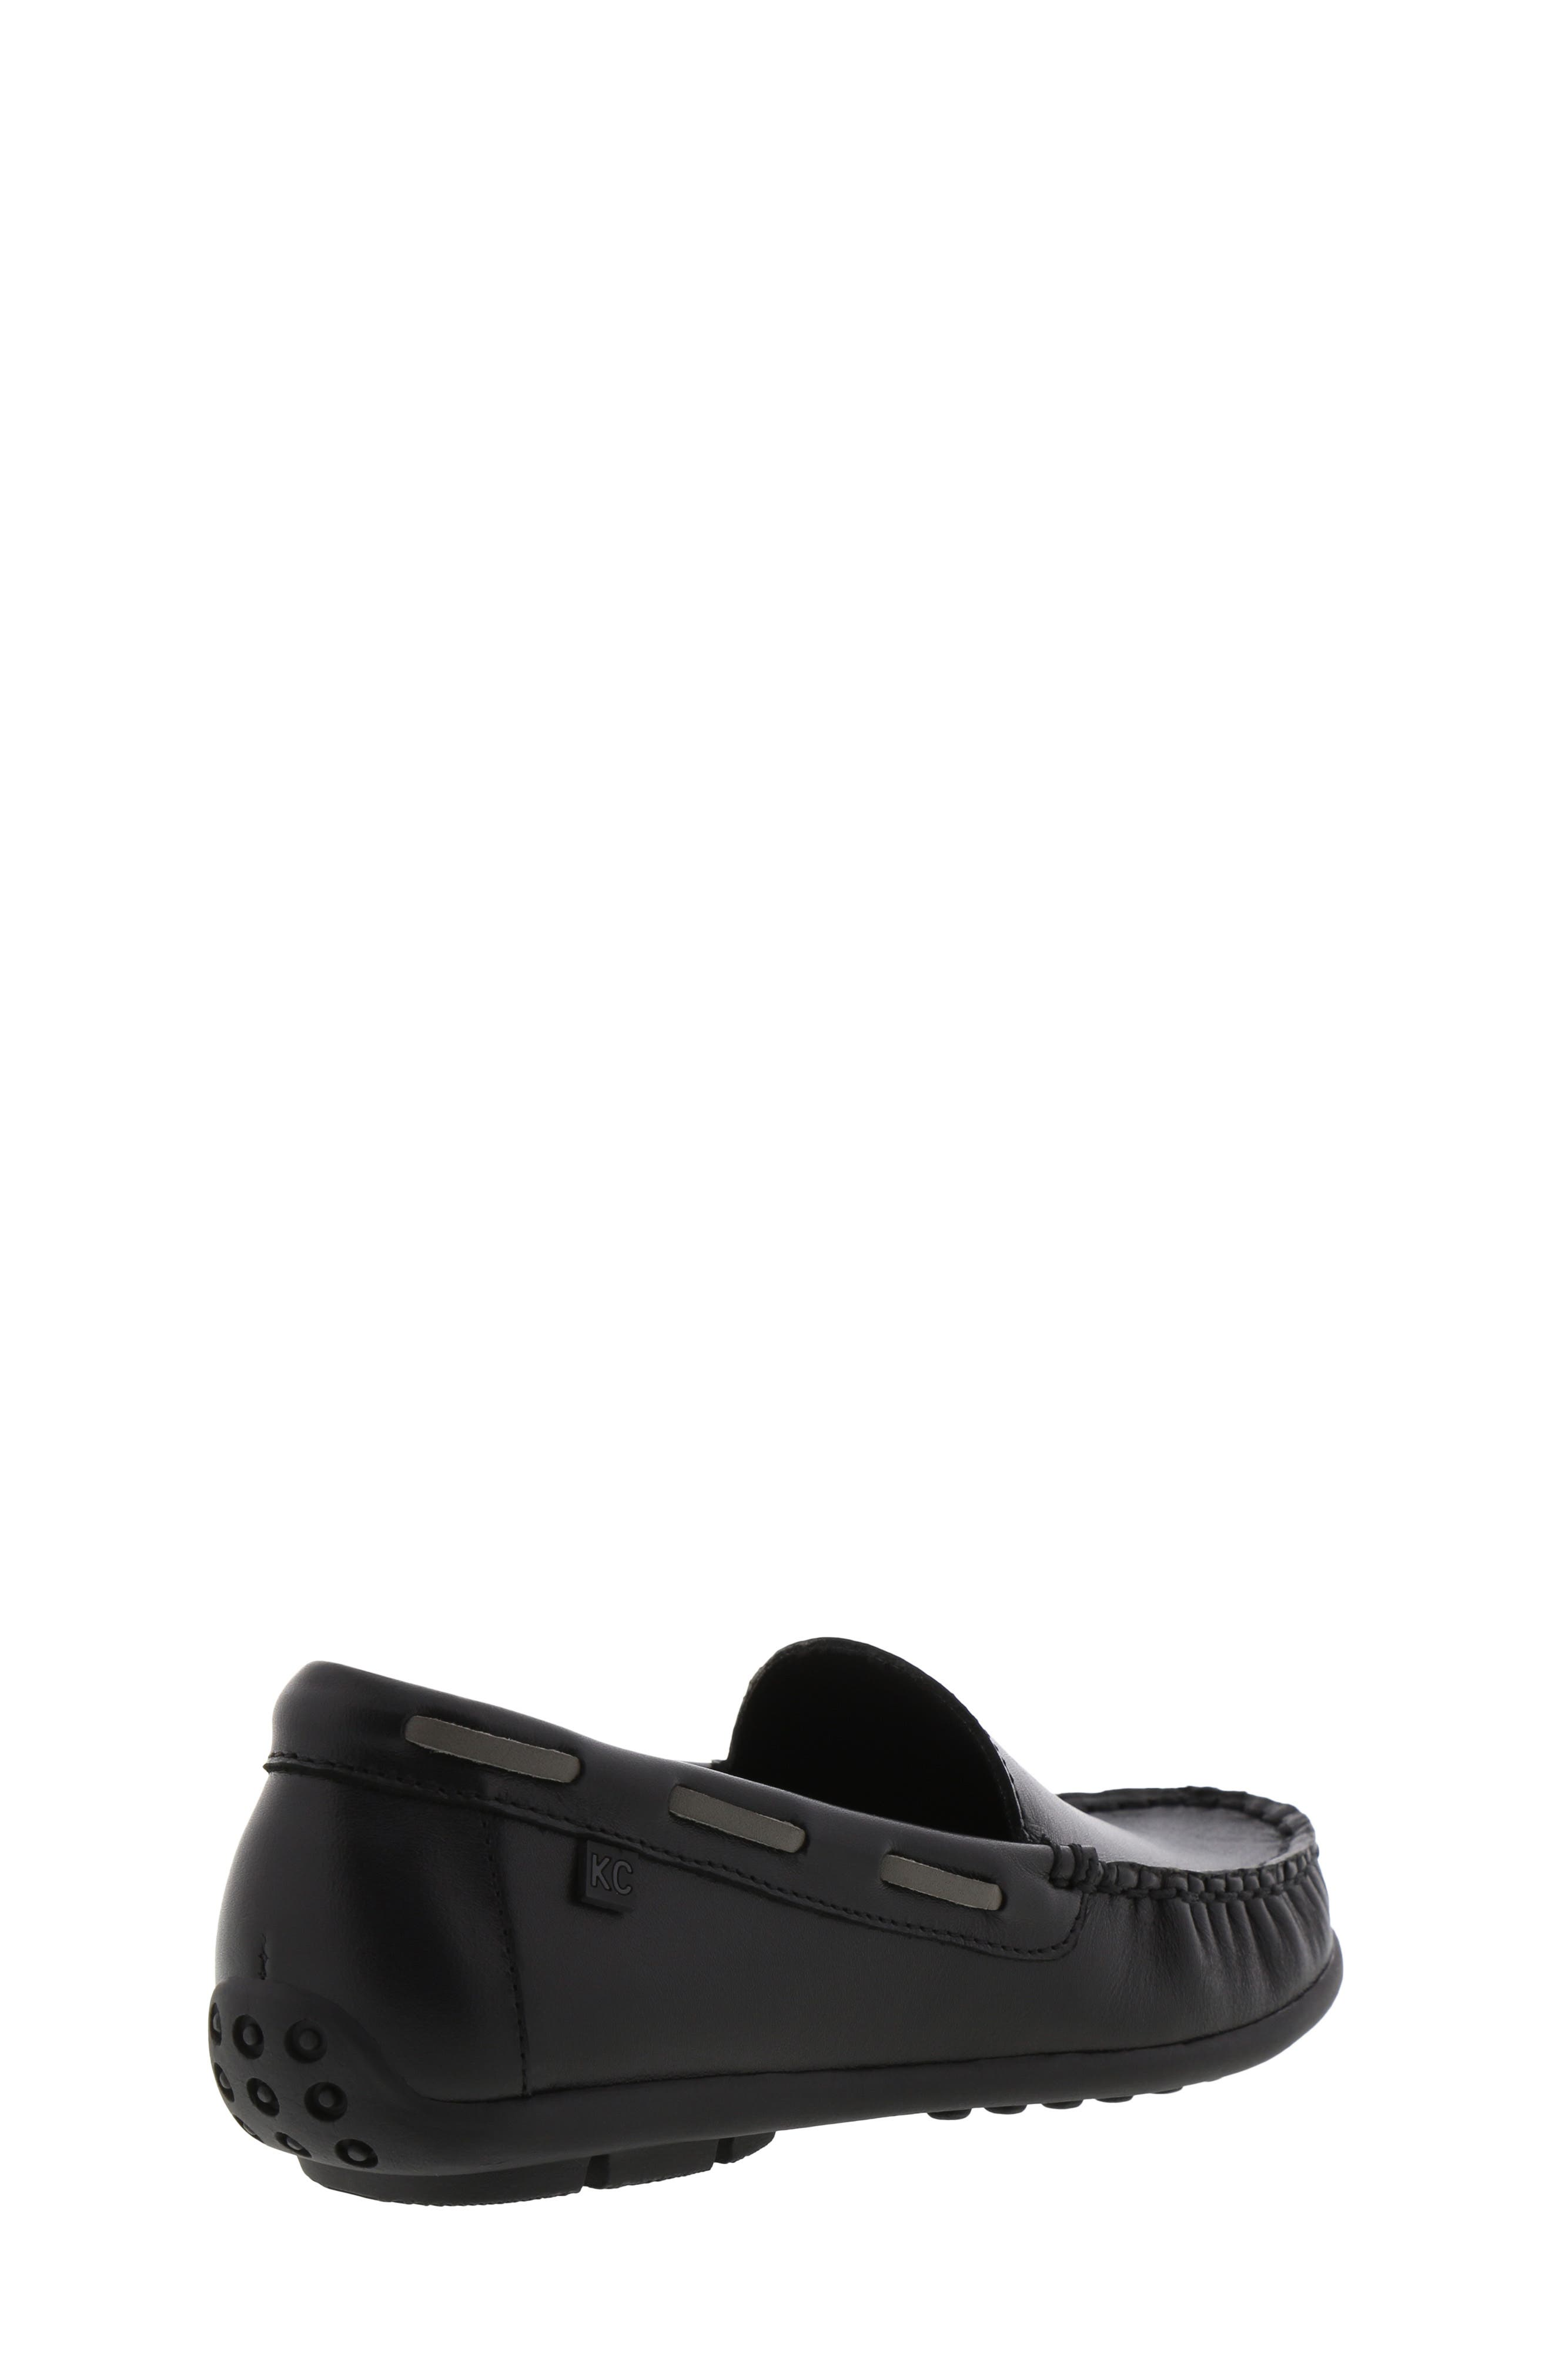 REACTION KENNETH COLE, Helio Shift Driving Moccasin, Alternate thumbnail 2, color, BLACK SMOOTH